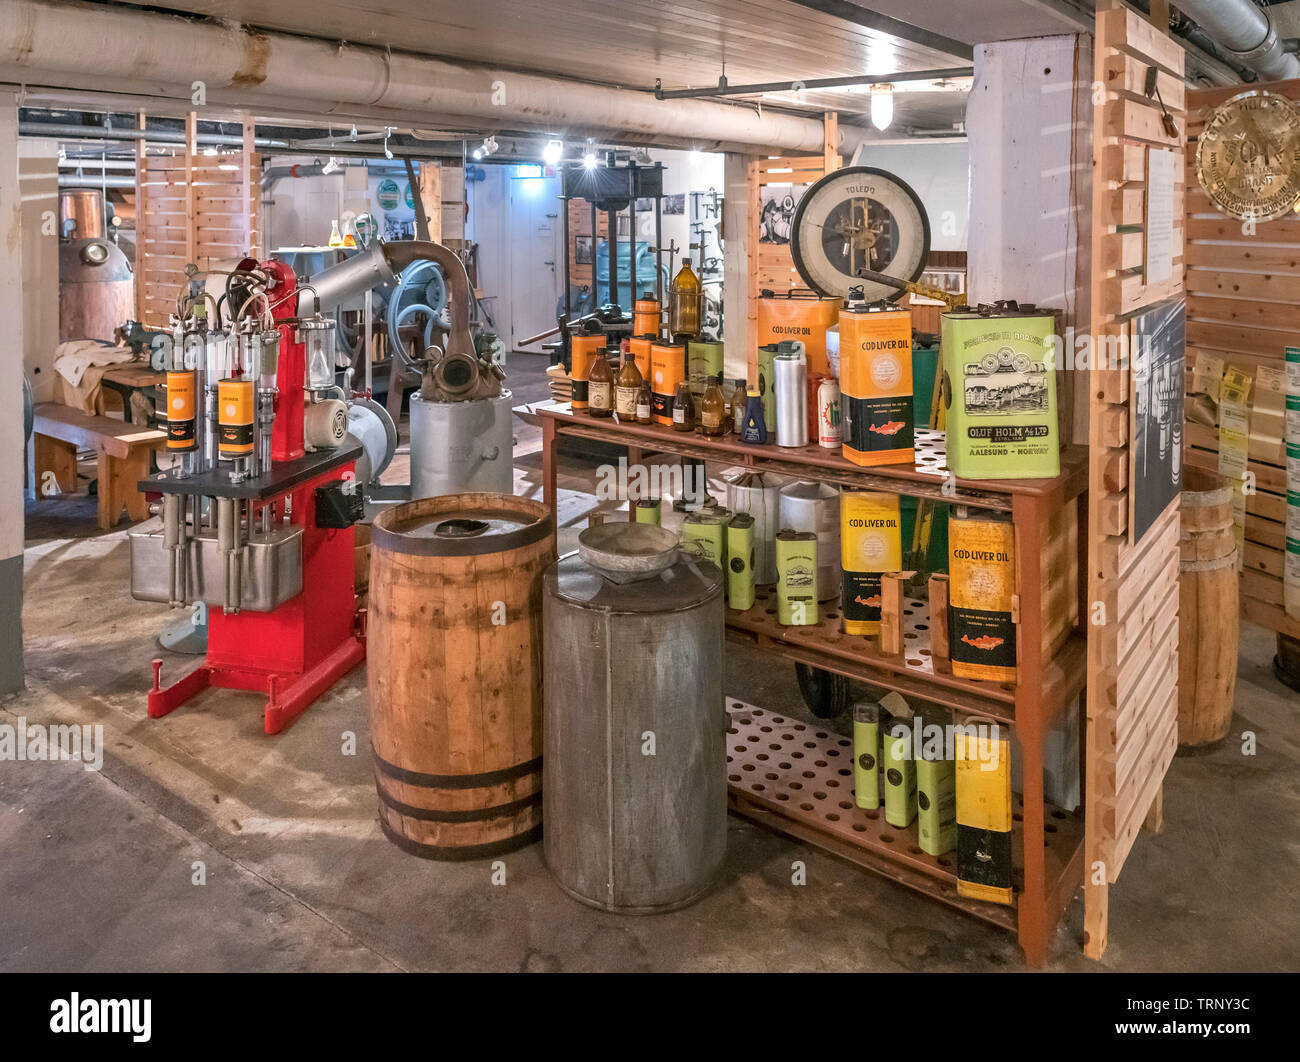 Display of machinery for making Cod Liver Oil, Fisheries Museum, Ålesund, Møre og Romsdal, Sunnmøre, Norway - Stock Image